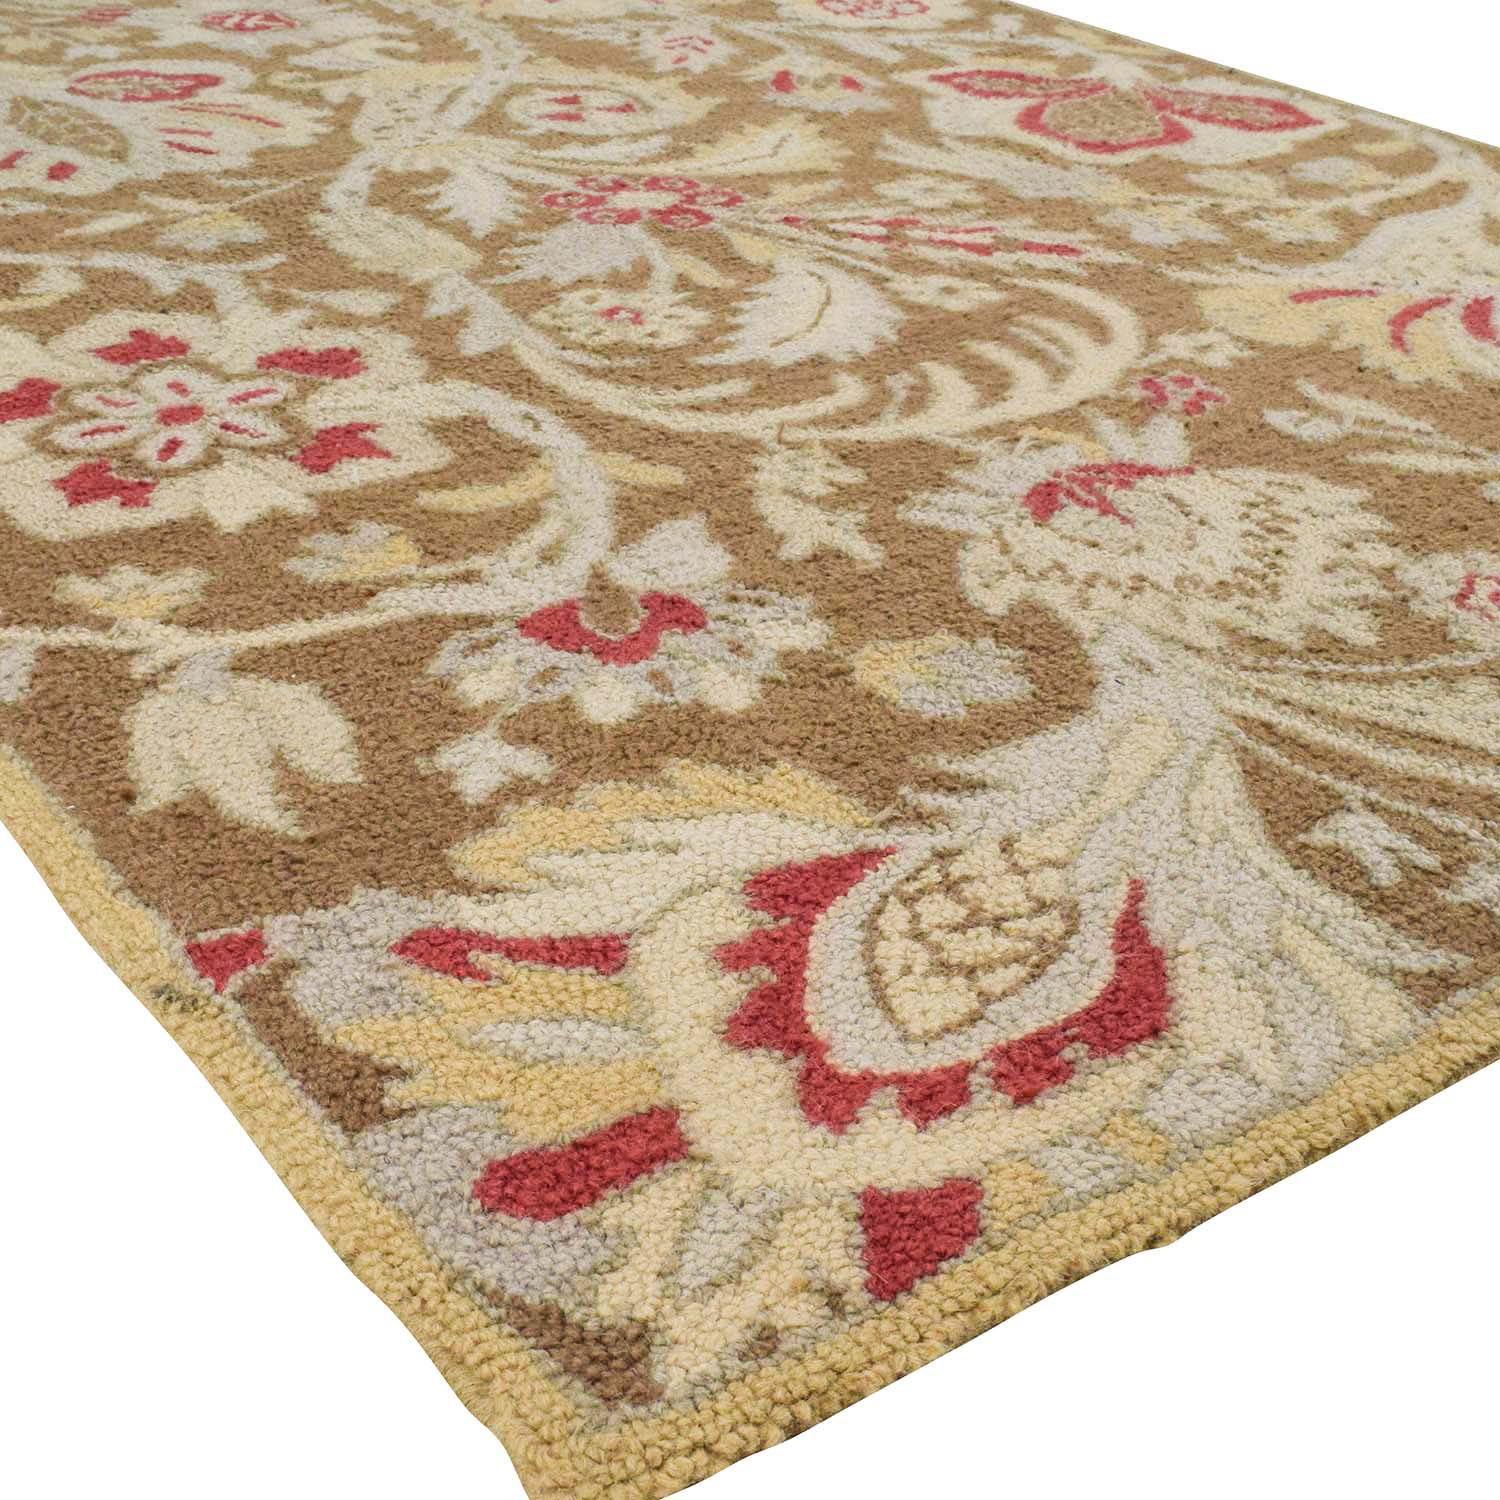 Pottery Barn Pottery Barn Area Rug / Decor